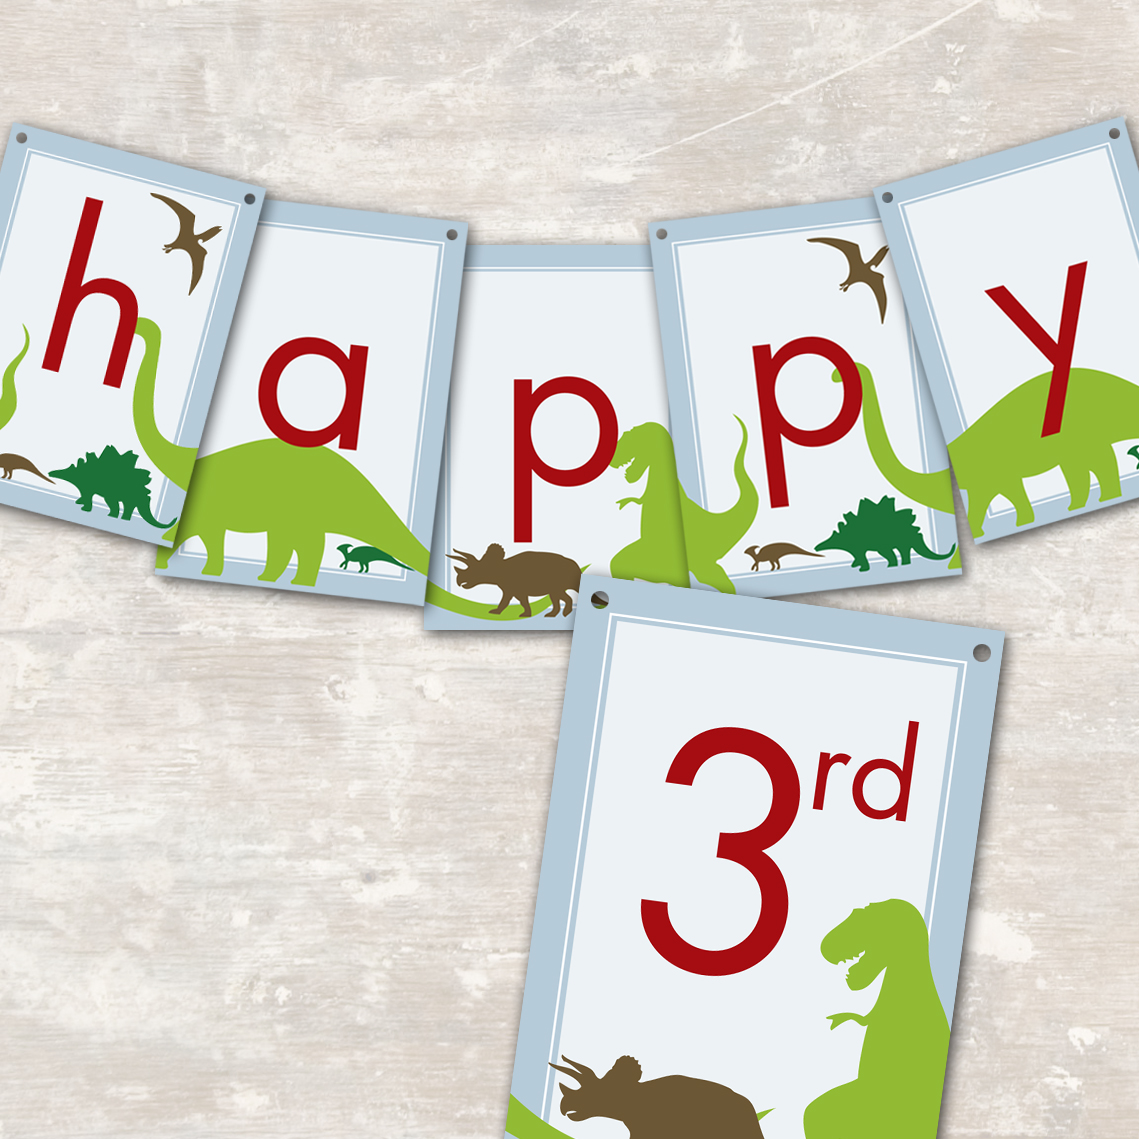 free printable birthday party signs ; ef4025d8a8abb23247d750dd79ea5514